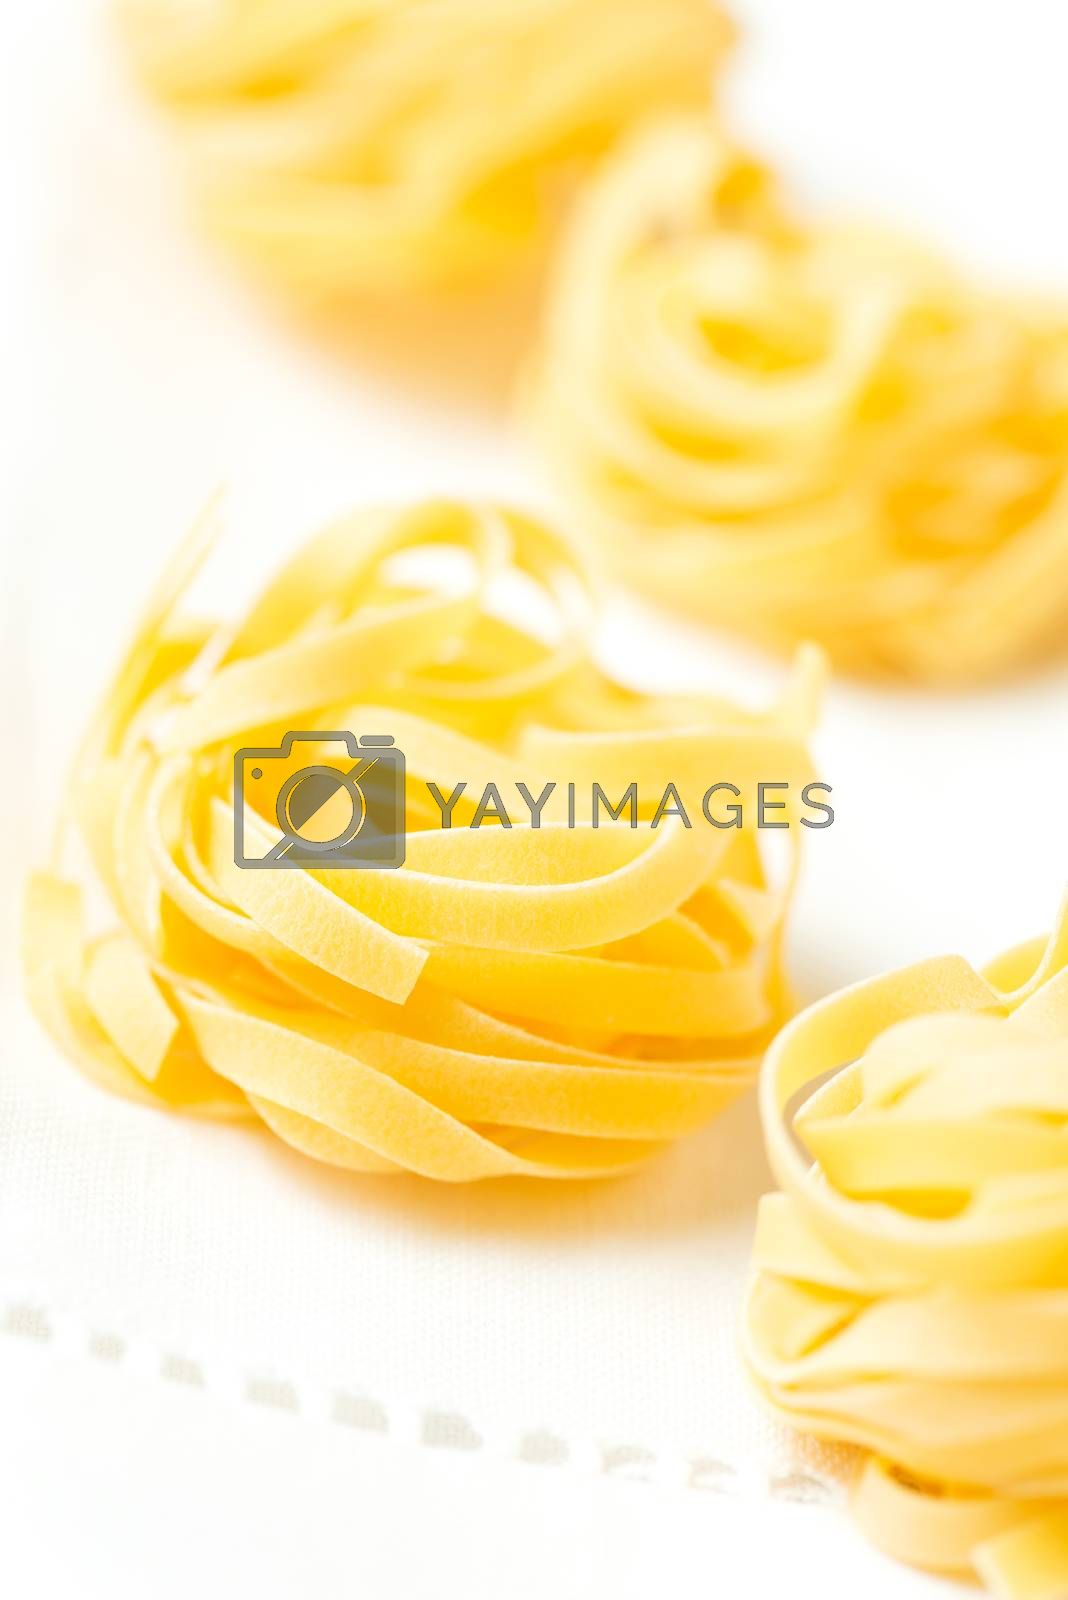 Royalty free image of Nests of pasta tagliatelle on tablecloth vertical by Nanisimova